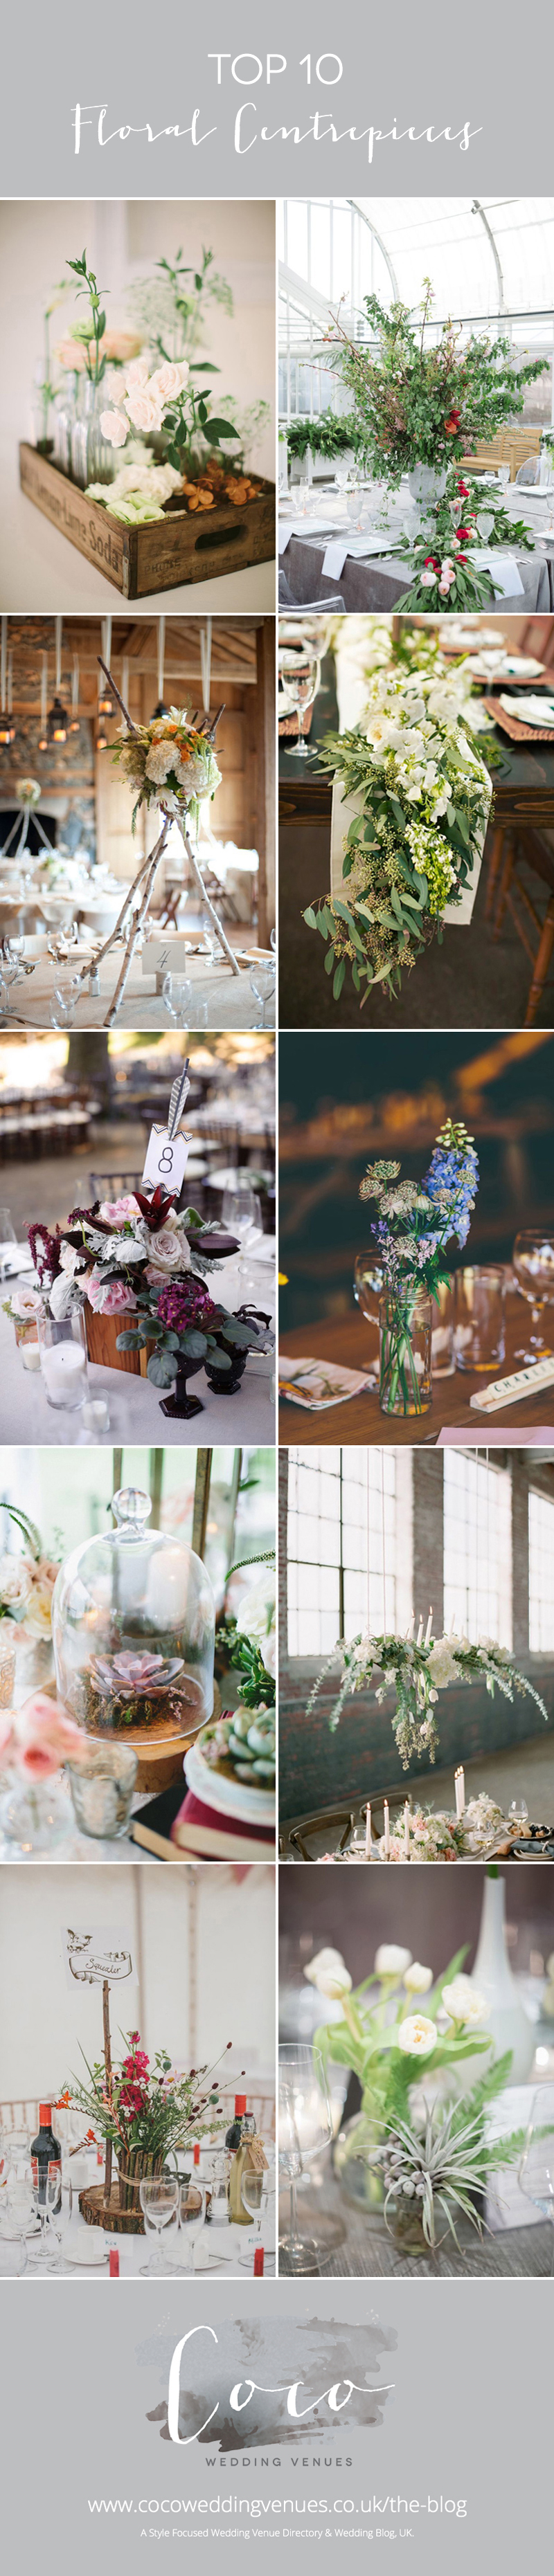 10-floral-centrepieces-wedding-inspiration-coco-wedding-venues-pin-it